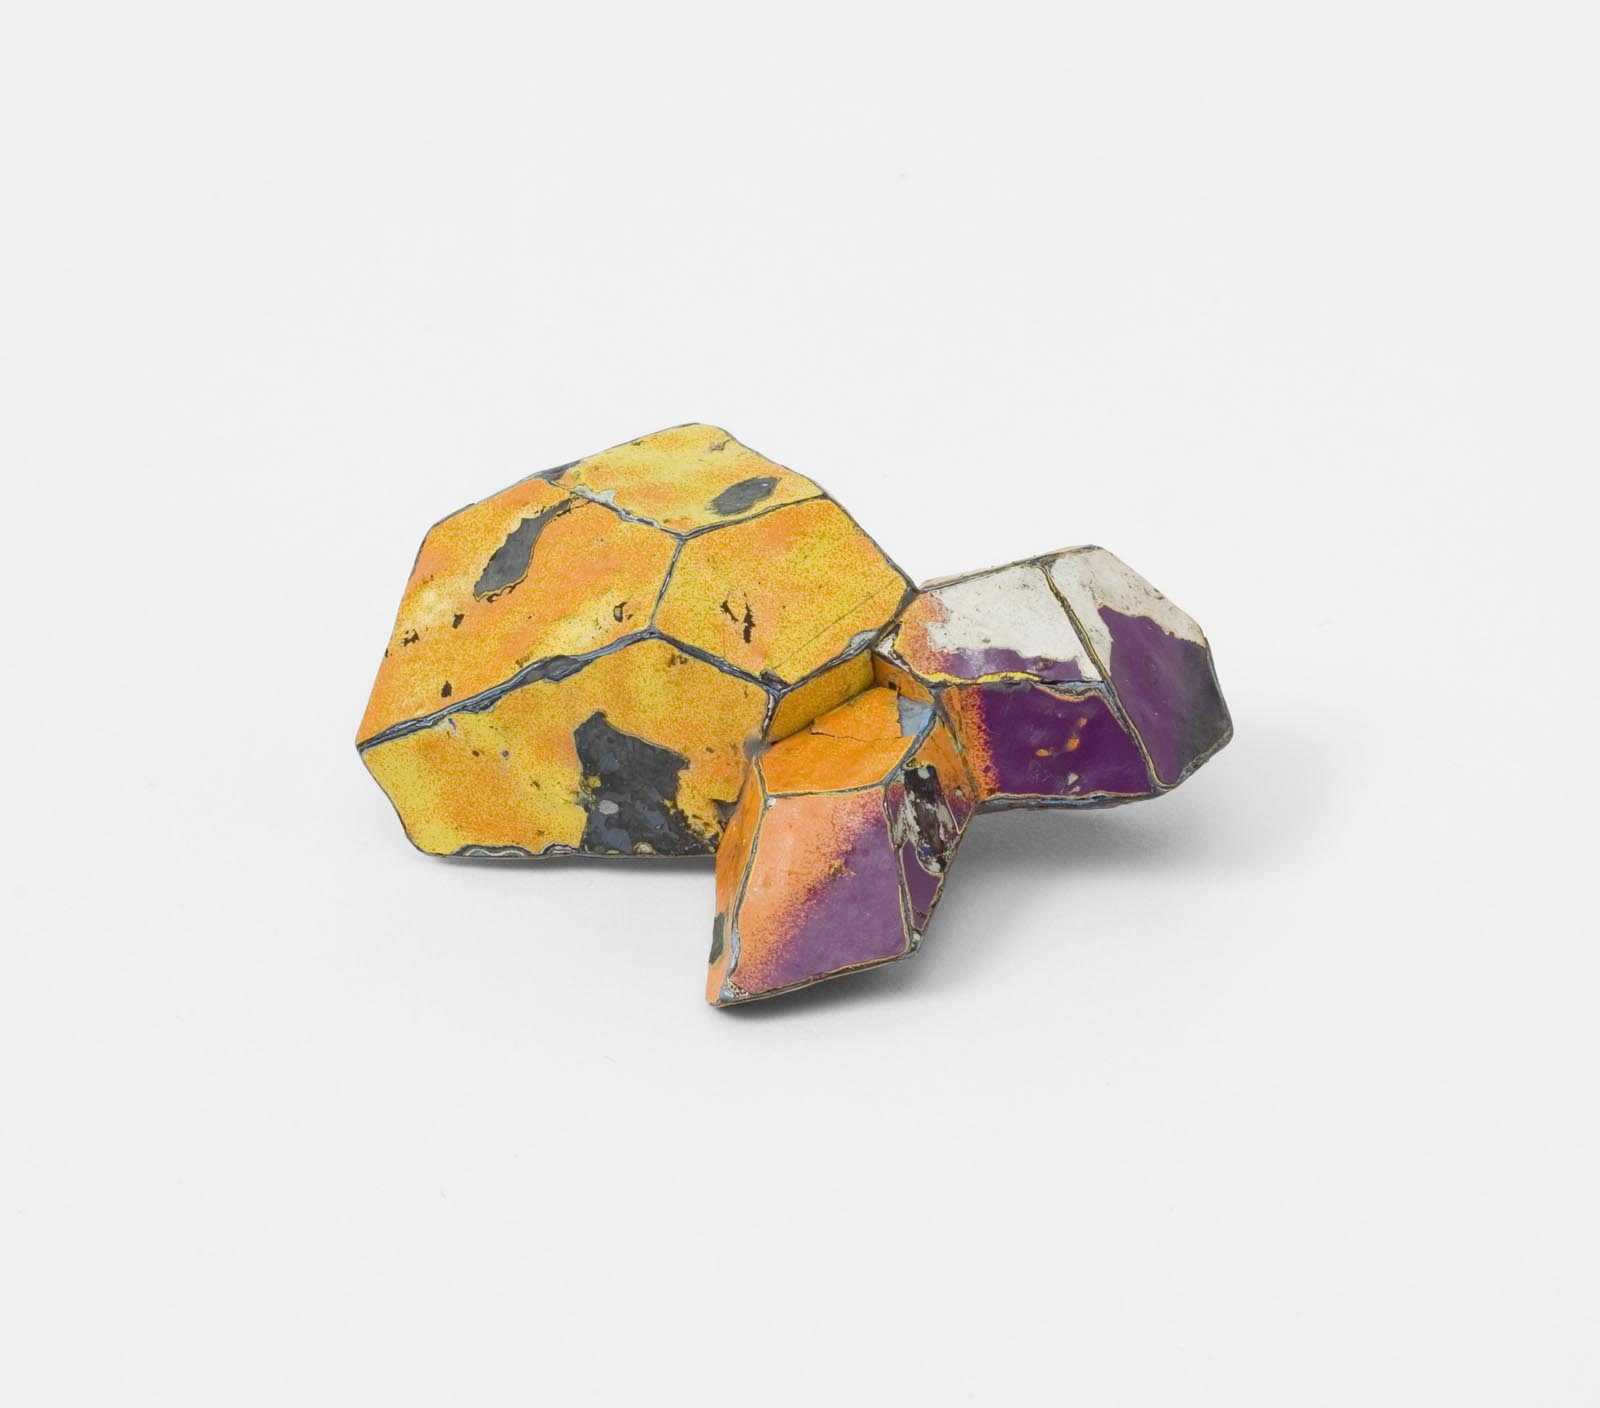 """Fiery Orange"" I Brooch, 2012 I Graffiti, silver, stainless steel I Photo: Mirei Takeuchi"